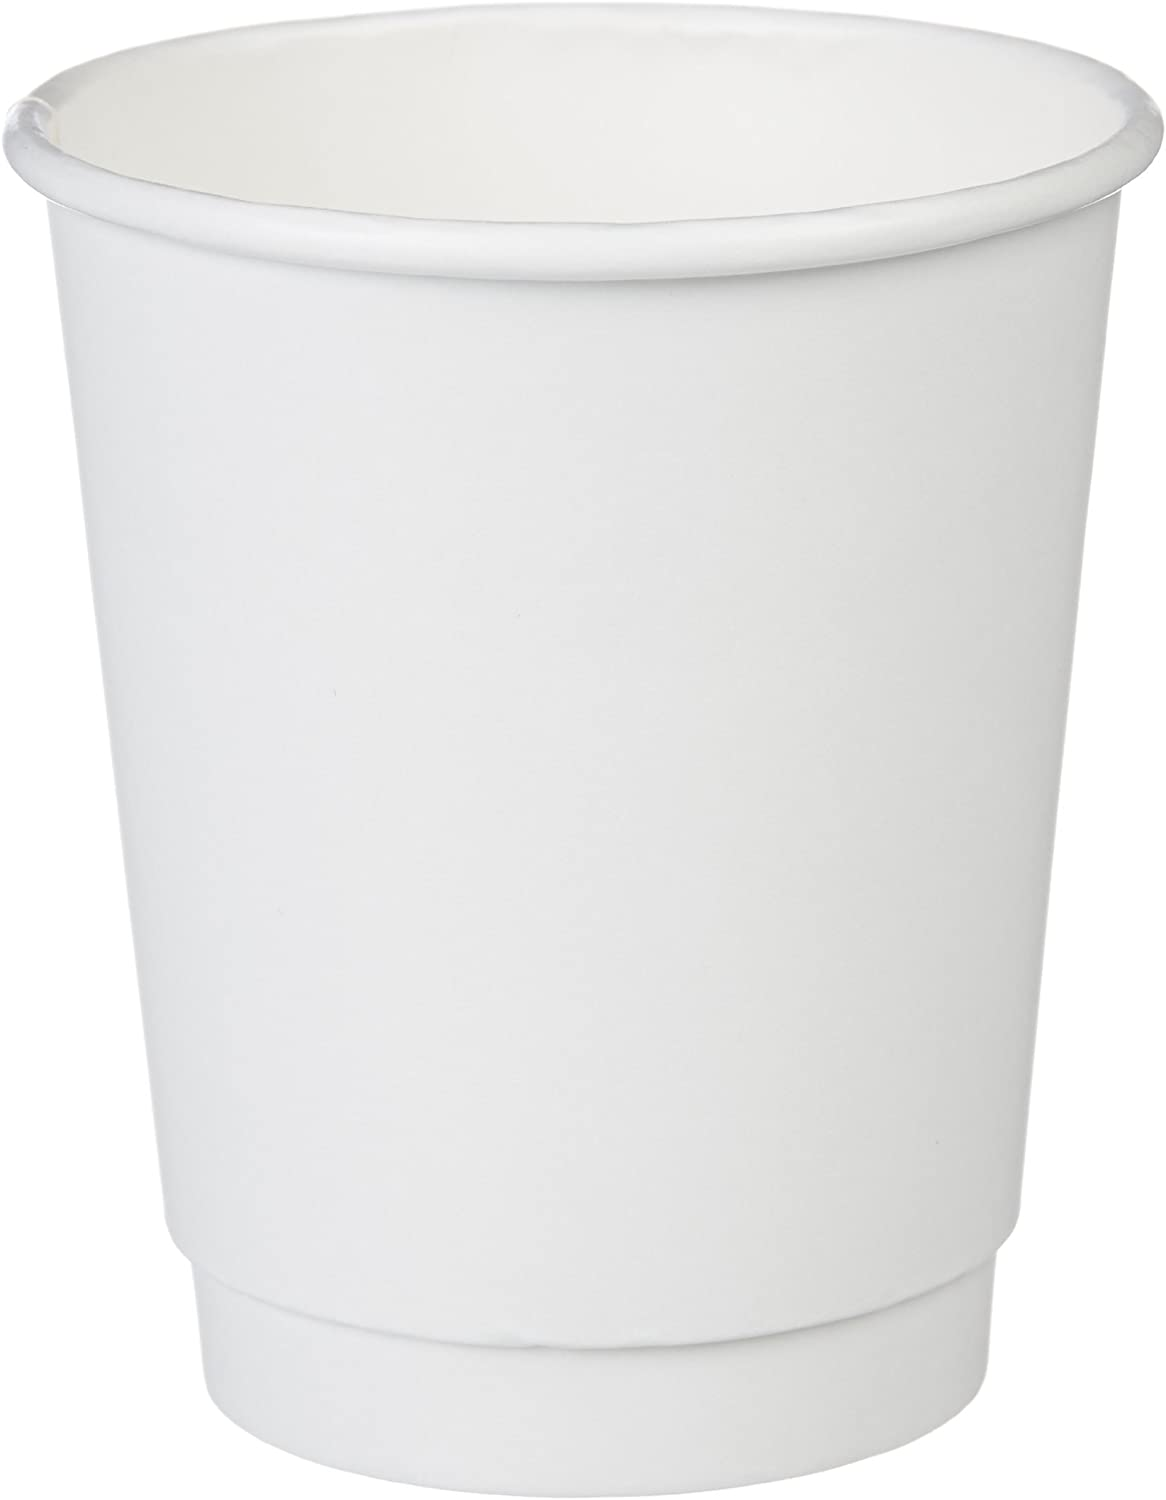 AmazonBasics 8 oz. Insulated Paper Cup, 500-Count